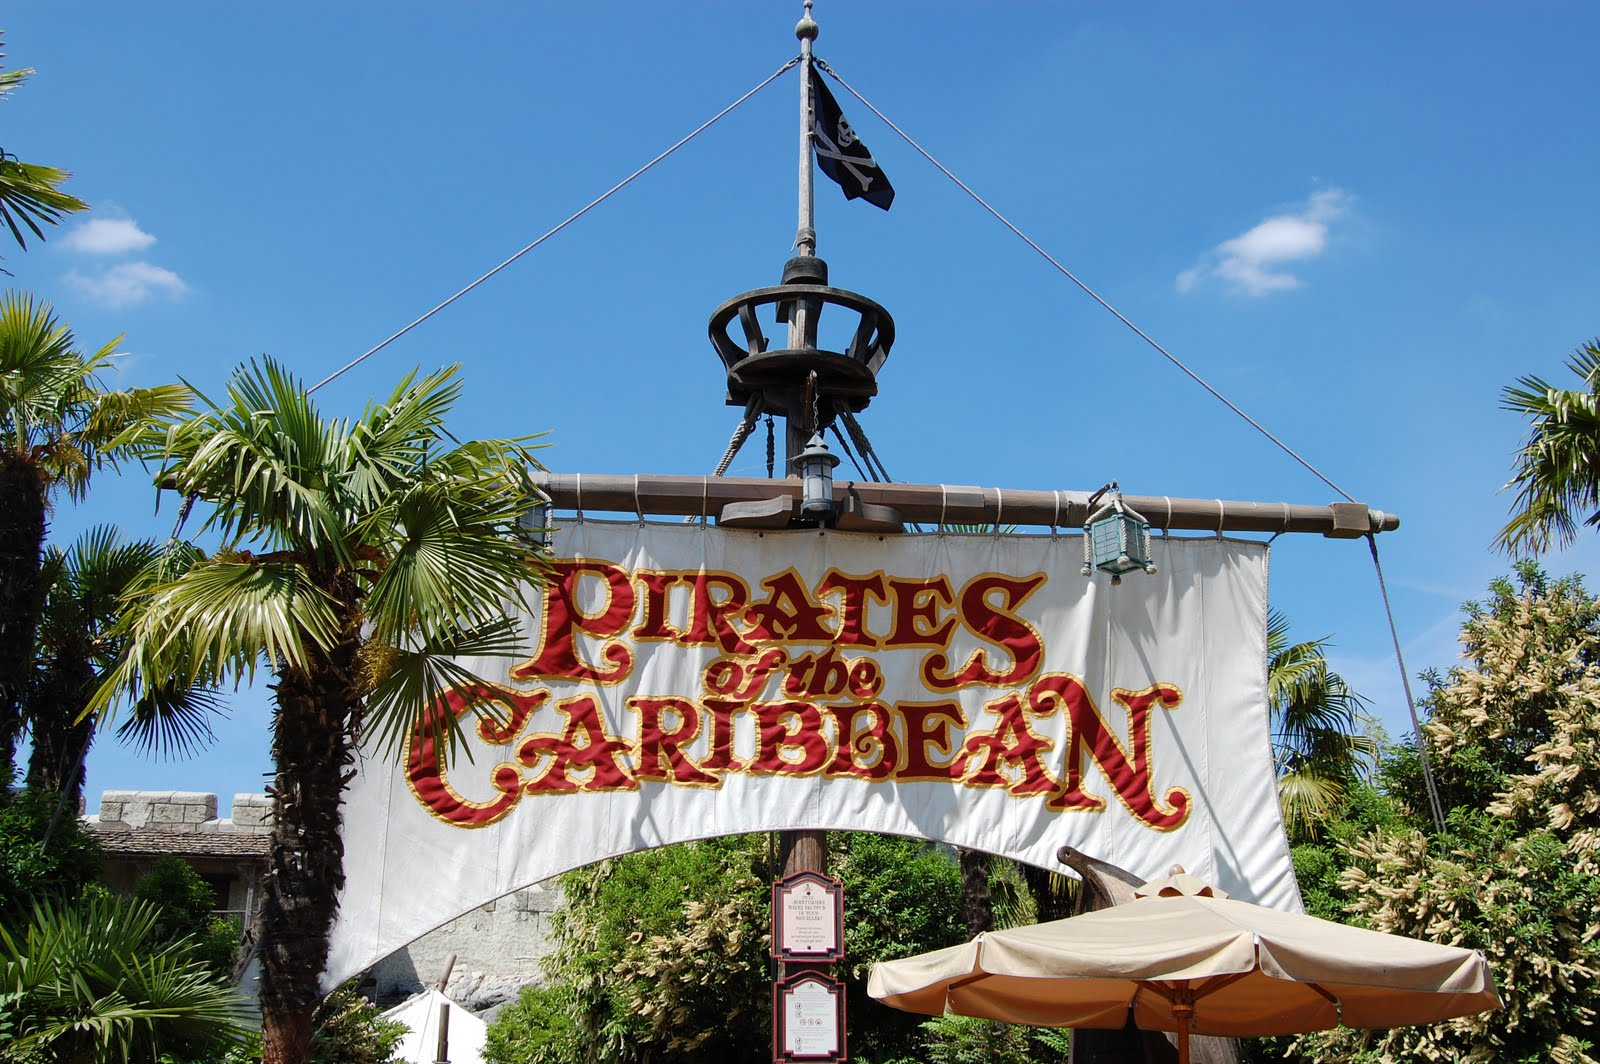 l-accident-a-eu-lieu-dans-l-attraction-pirates